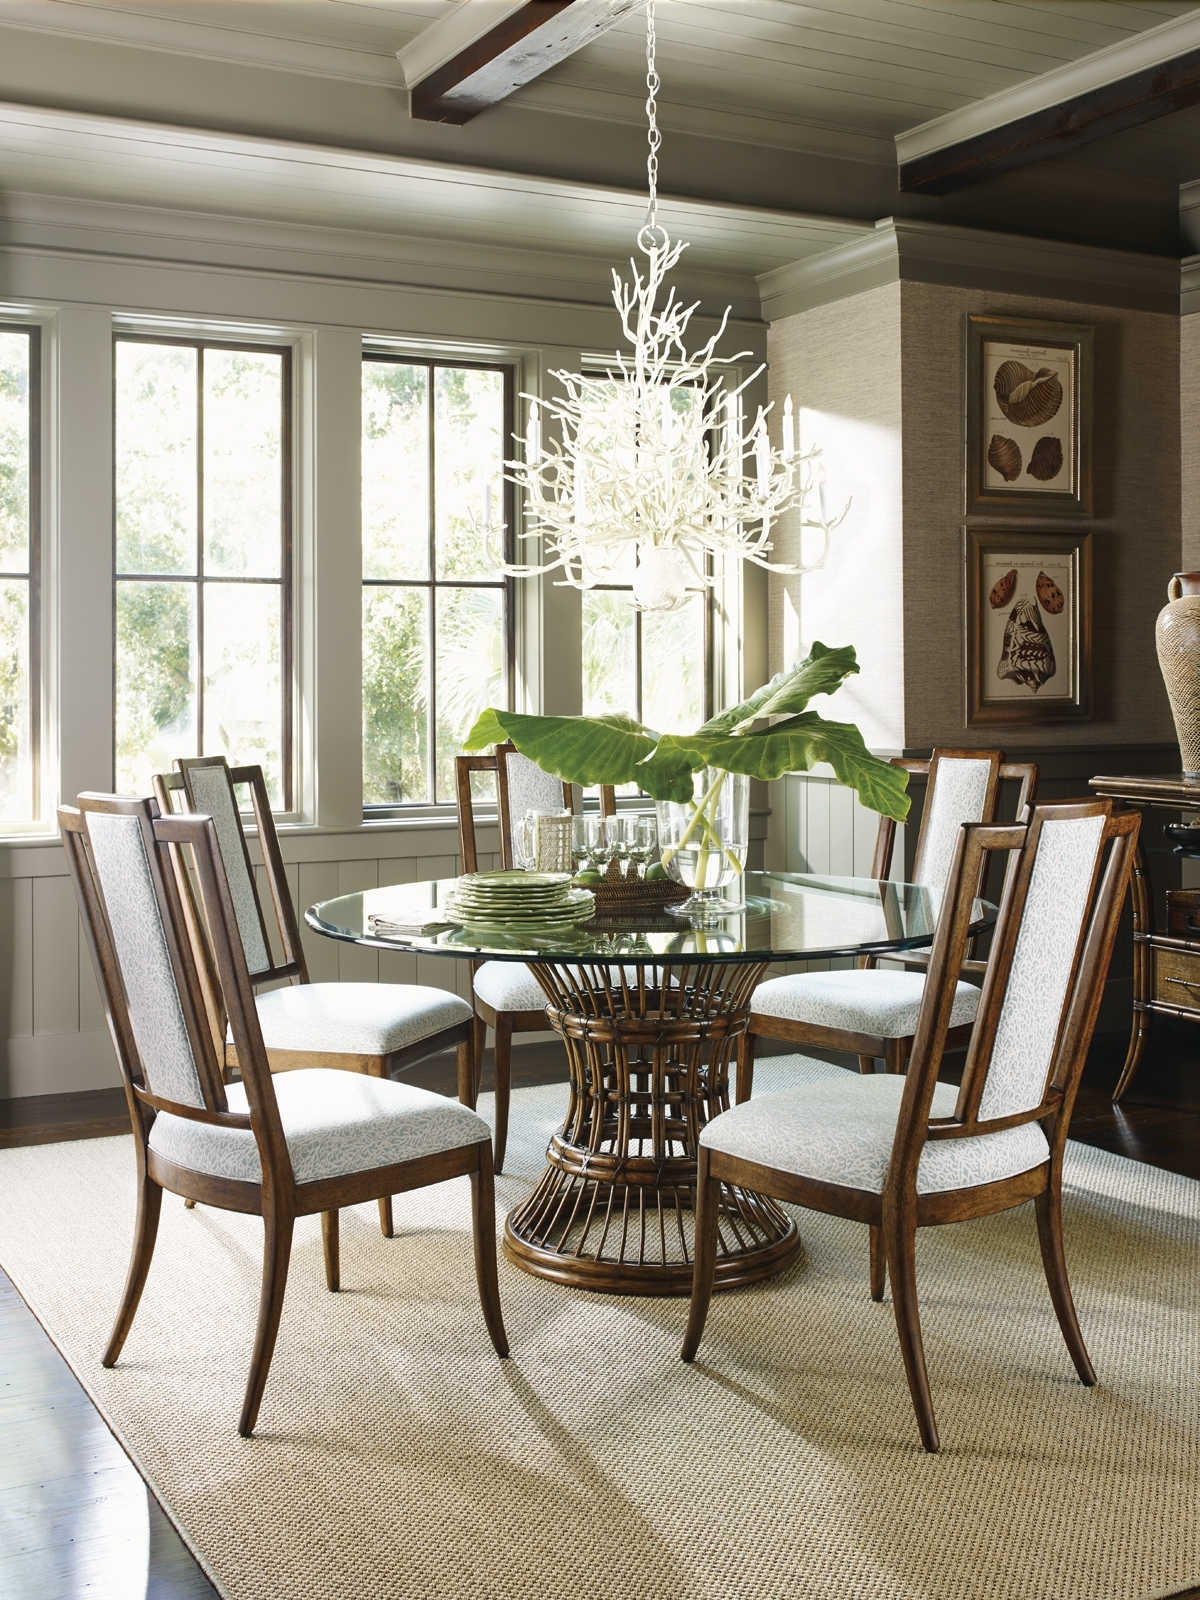 Lexington Home Brands Within 2017 Balinese Dining Tables (View 8 of 25)